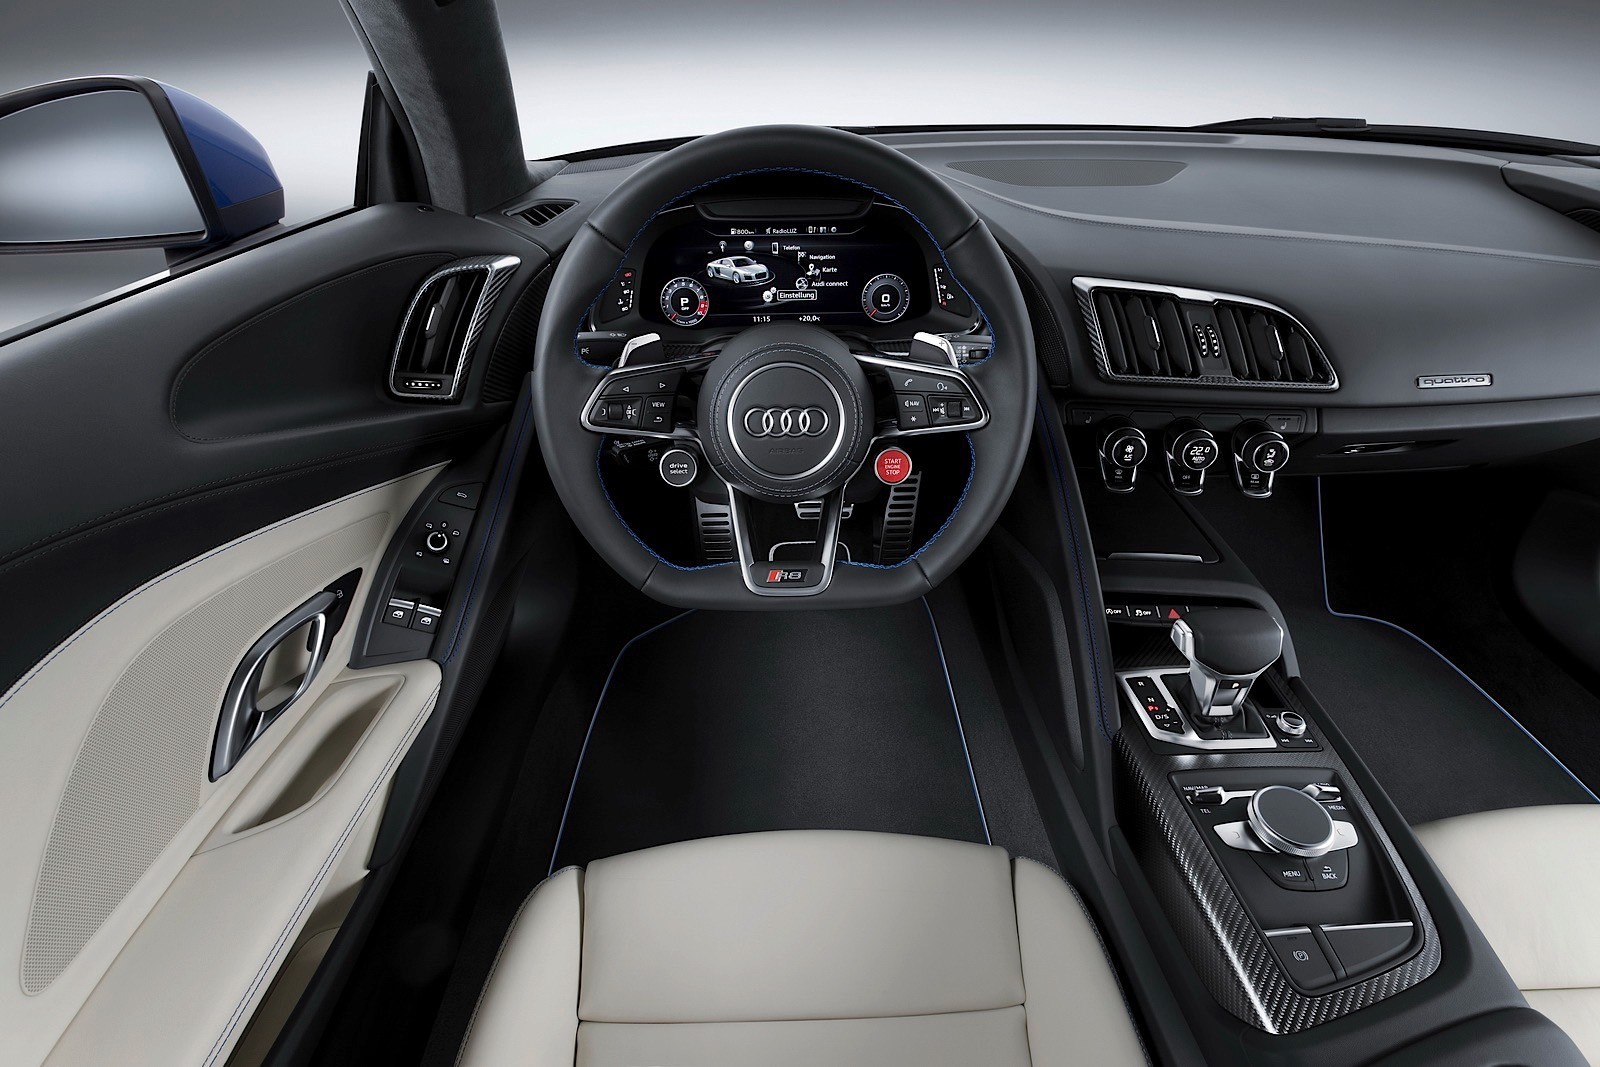 Audi R Officially Revealed With HP V Engine And MPH - Audi r8 top speed